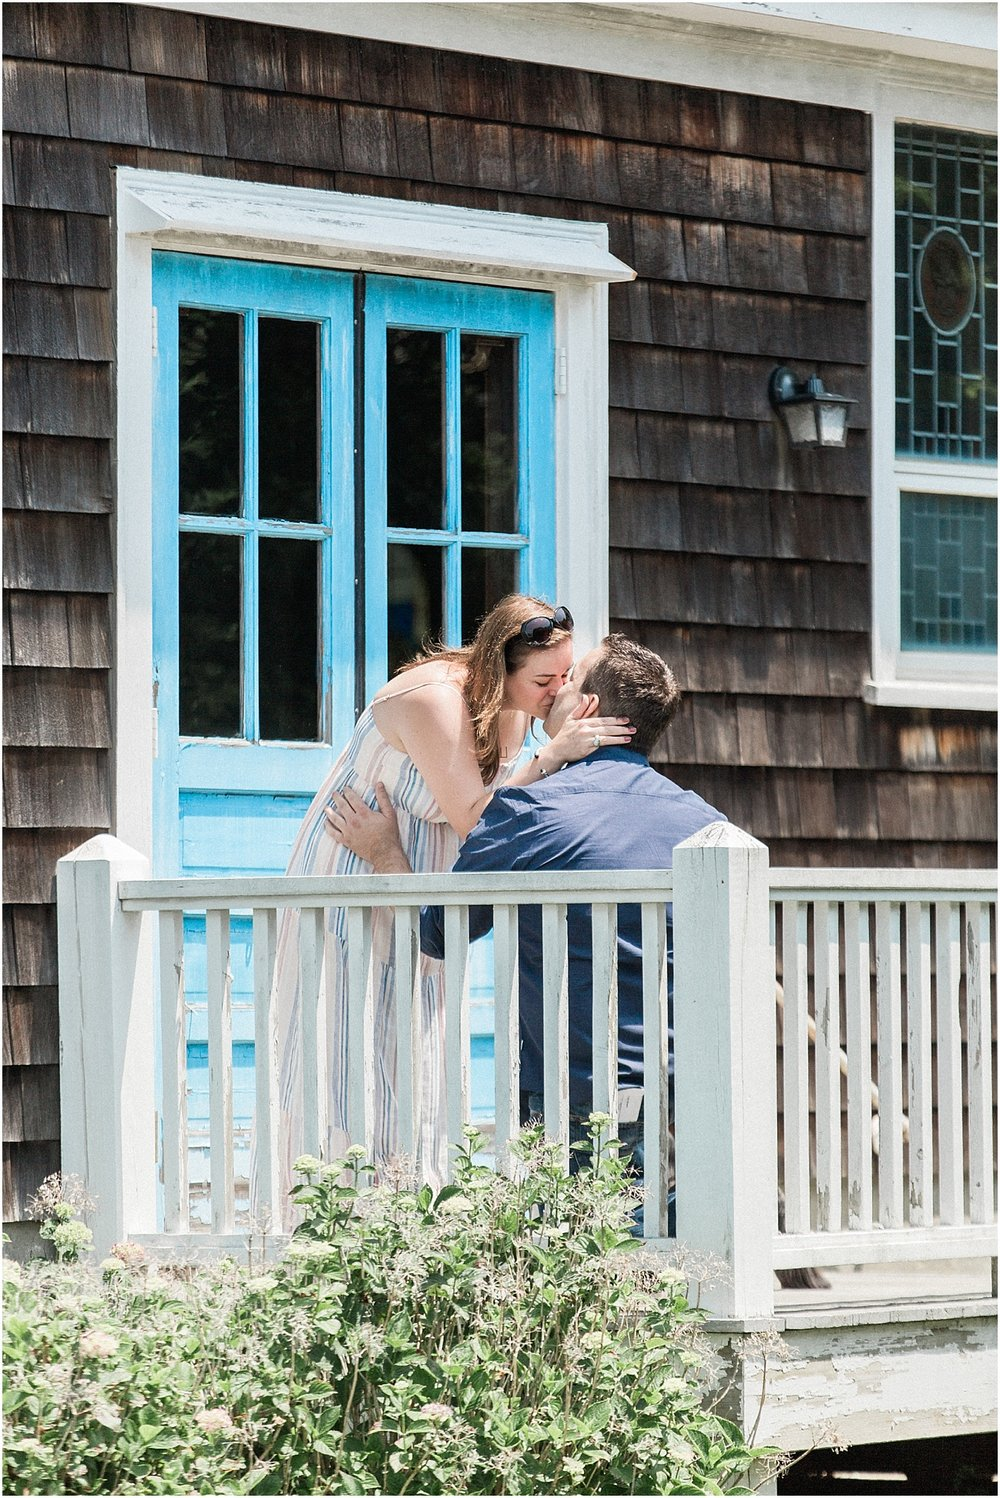 falmouth_liz_eric_proposal_boat_parents_sign_will_you_marry_me_cape_cod_boston_wedding_photographer_meredith_jane_photography_photo_0508.jpg